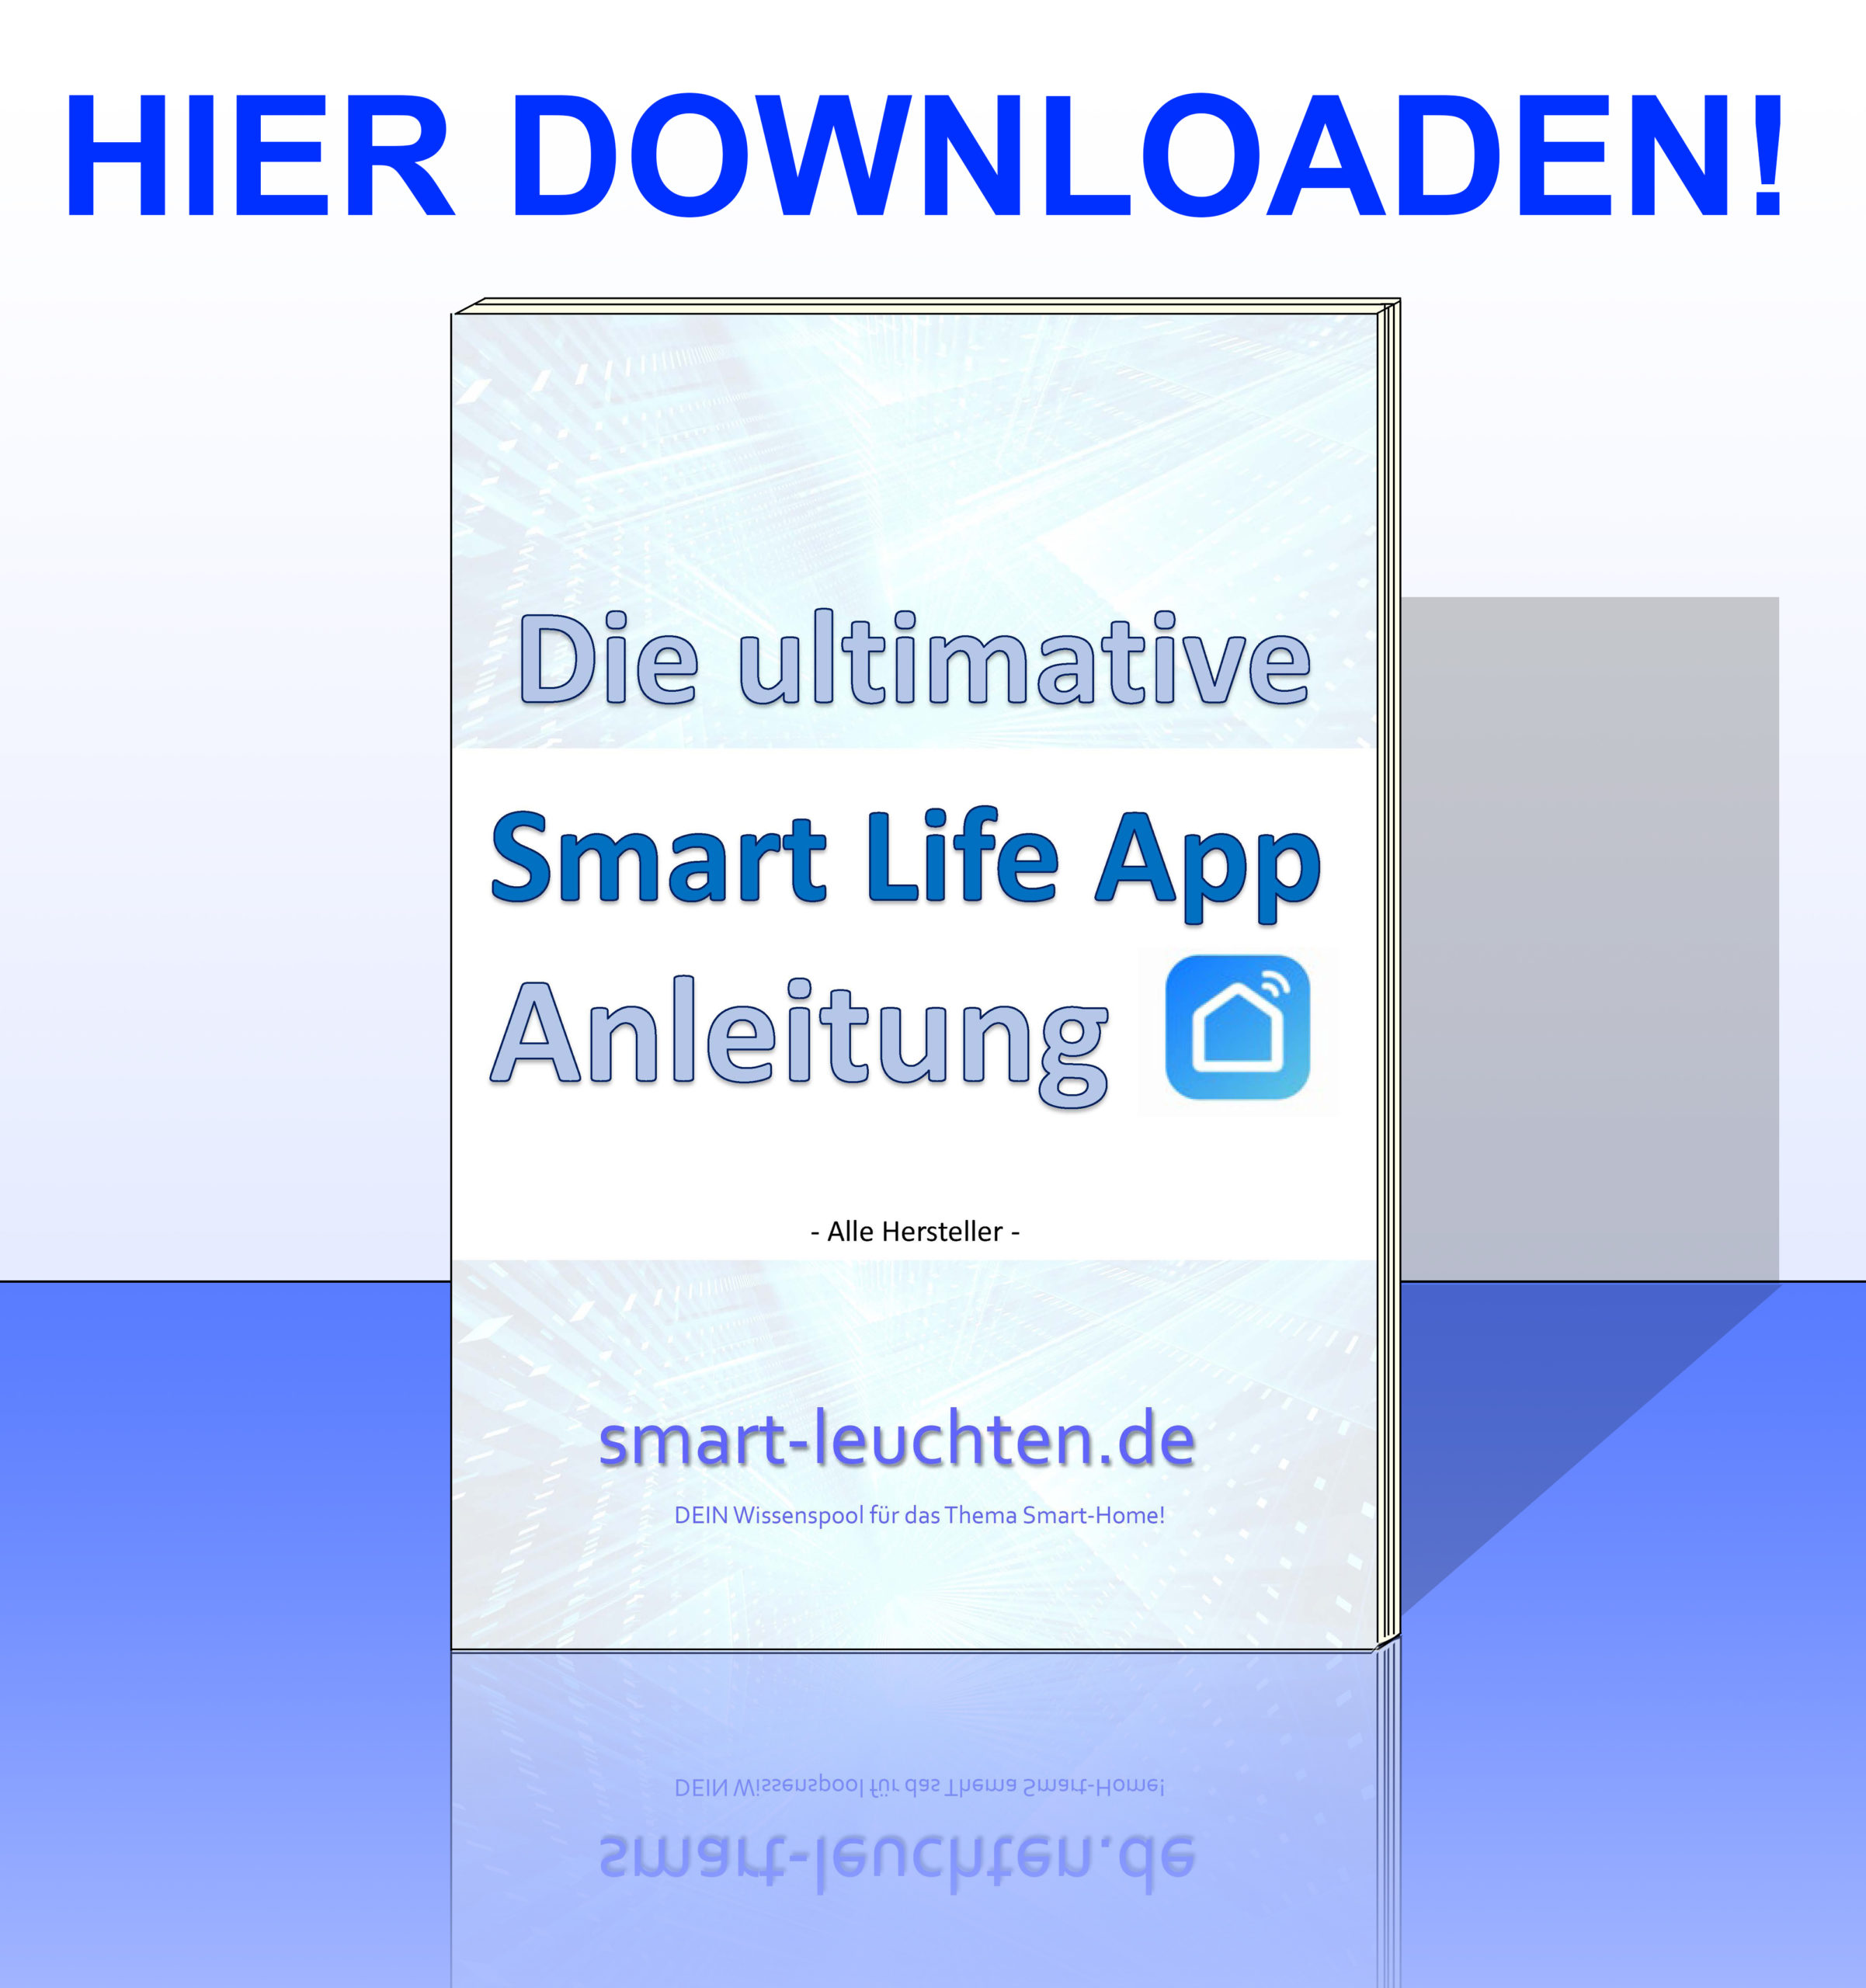 die_ultimative_smart_life_app_anleitung_ver1.0_3D_hier_downloaden